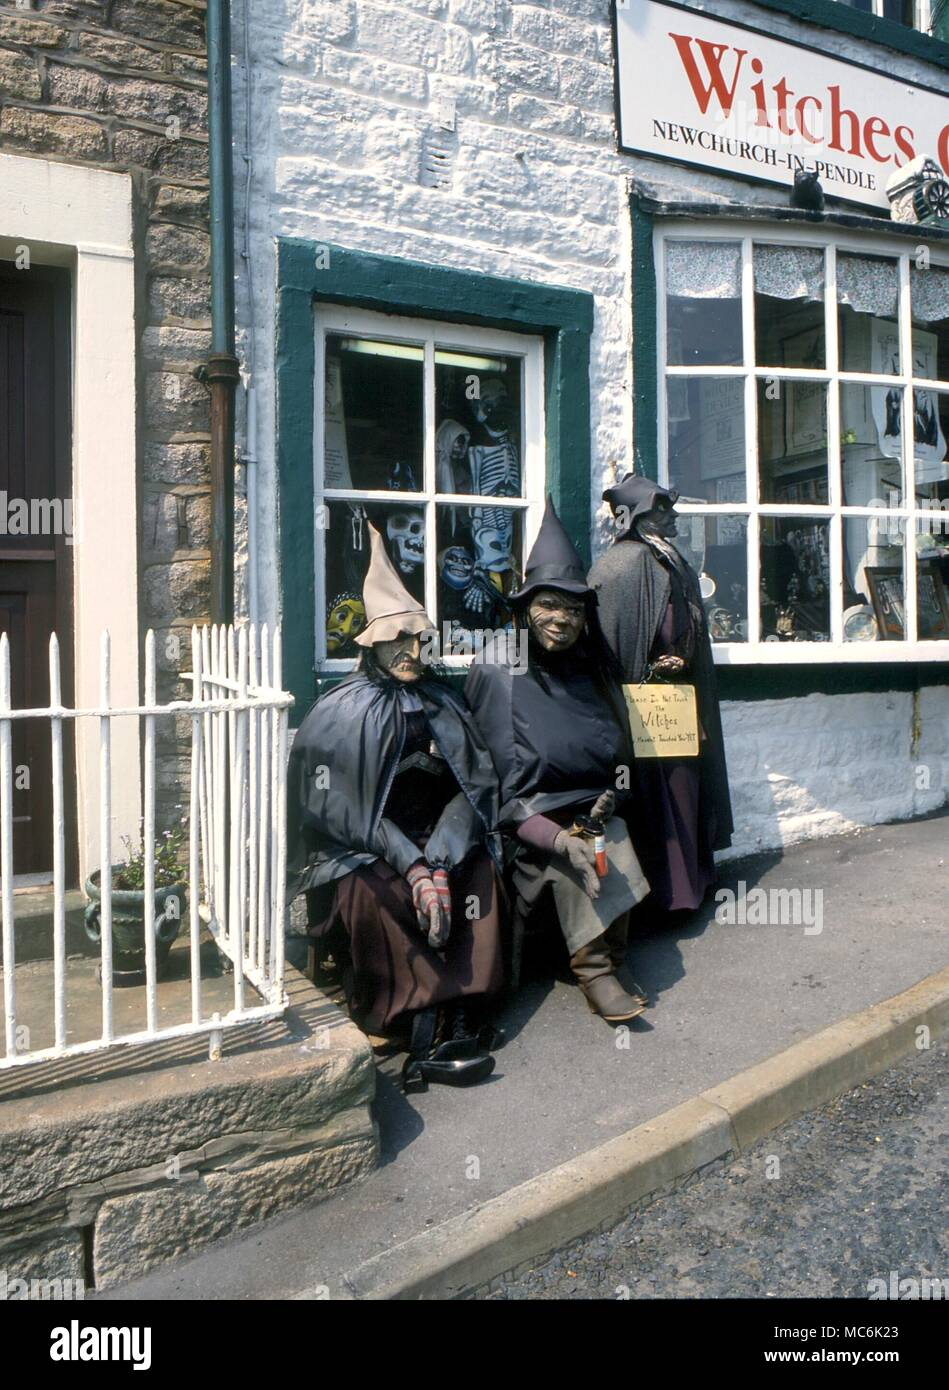 WITCHCRAFT SITES - Exterior of the 'witchcraft shop' 'Witches Galore